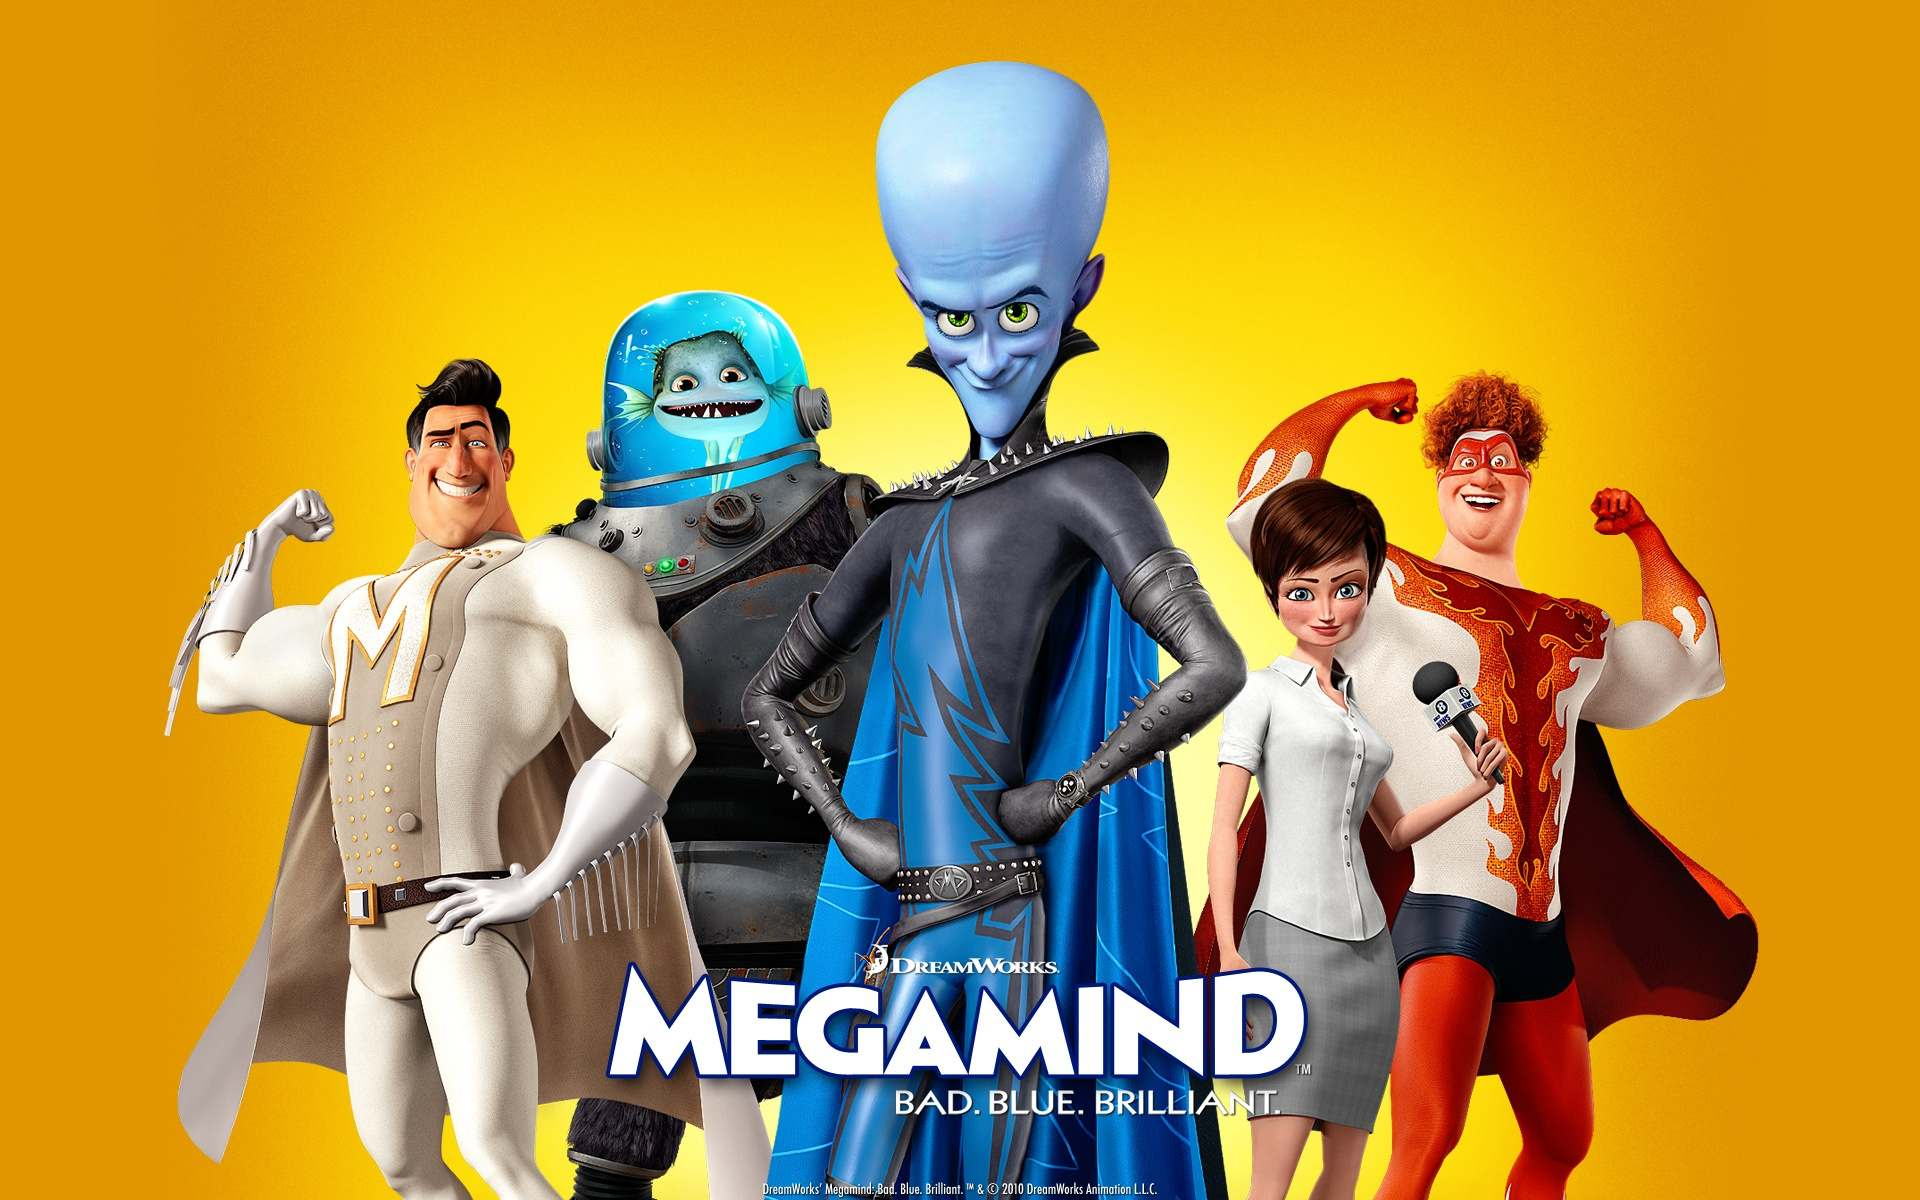 Megamind wallpapers, Movie, HQ Megamind pictures | 4K Wallpapers 2019